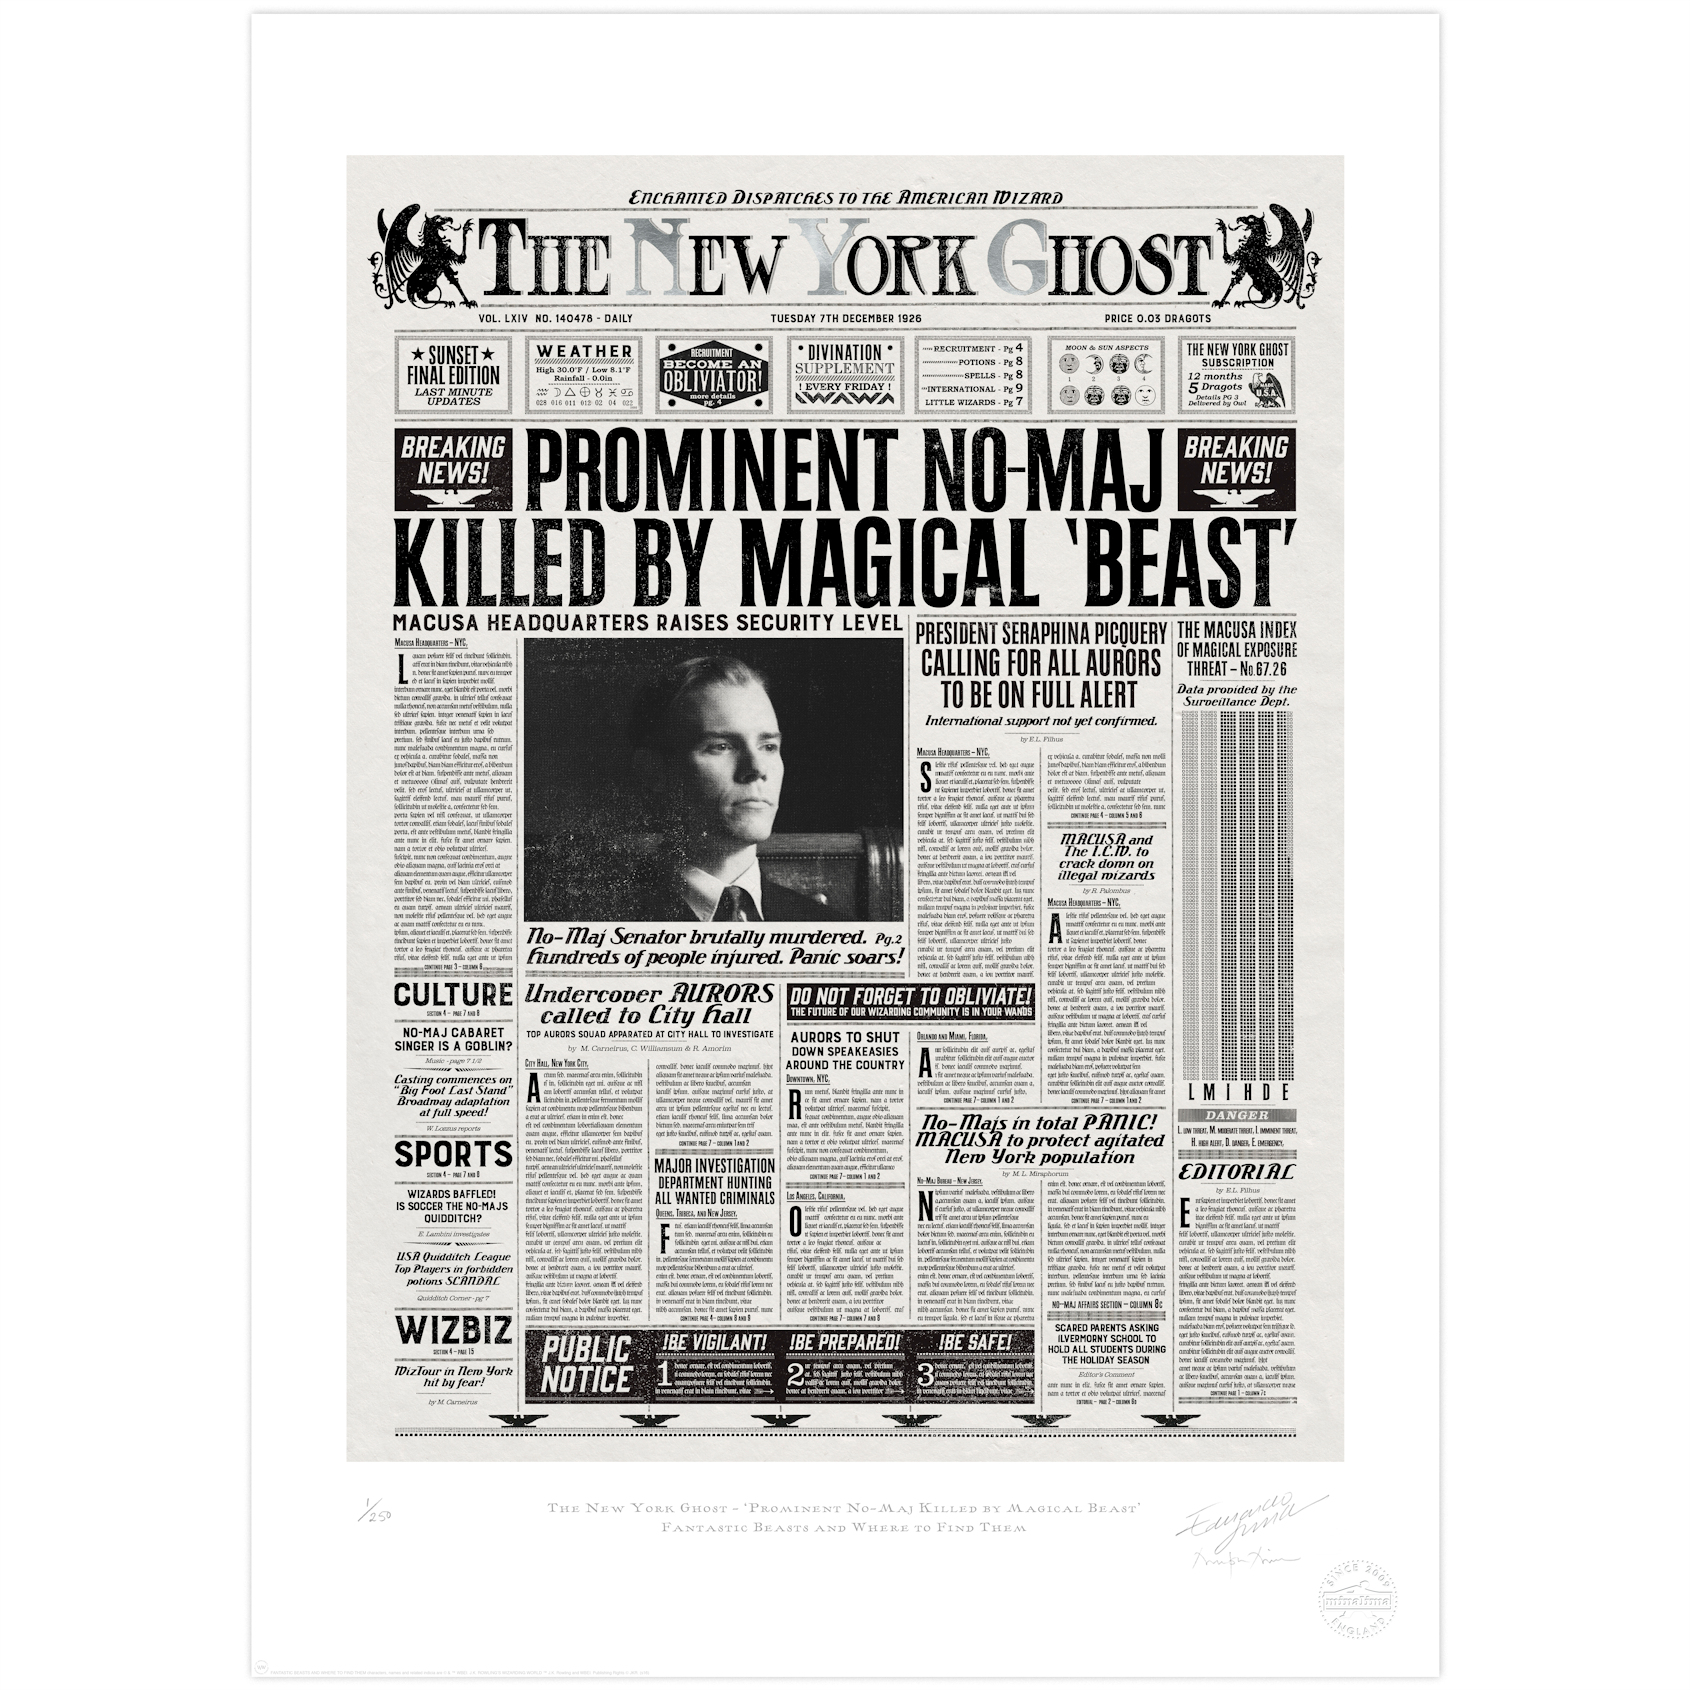 the_new_york_ghost_-_prominent_no-maj_killed__minalima_-_copie.jpg